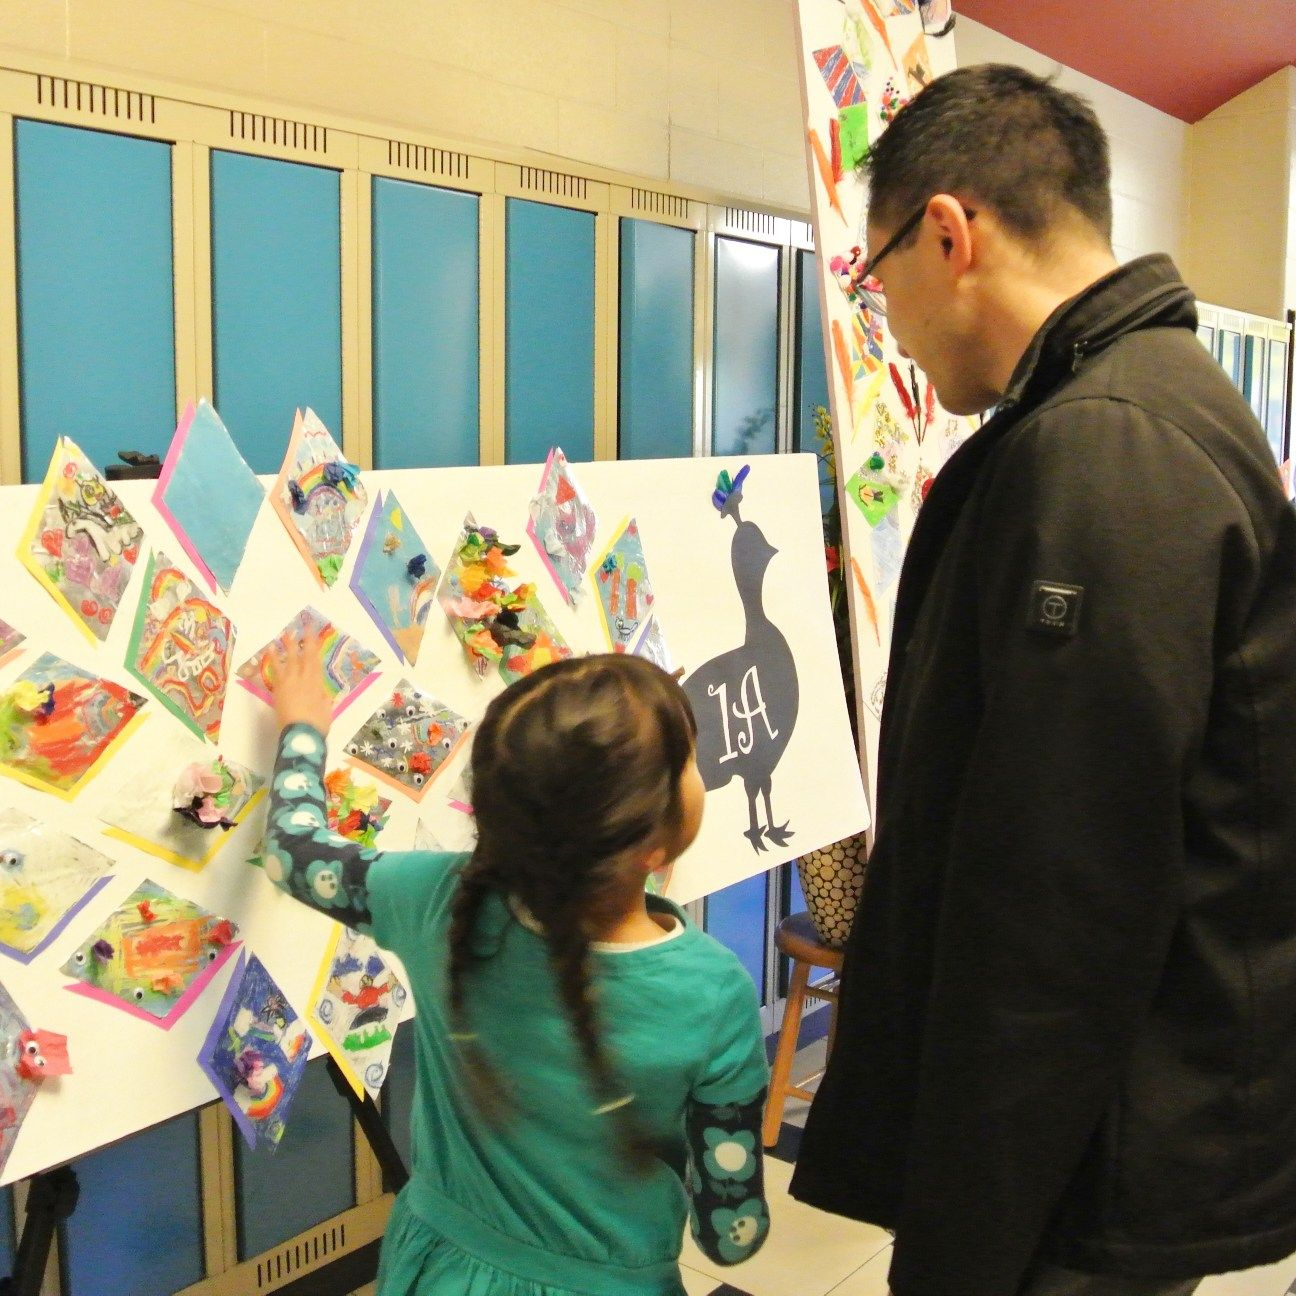 Elementary Private School students showcase work at Art Café as a part of Visual Arts and Drama